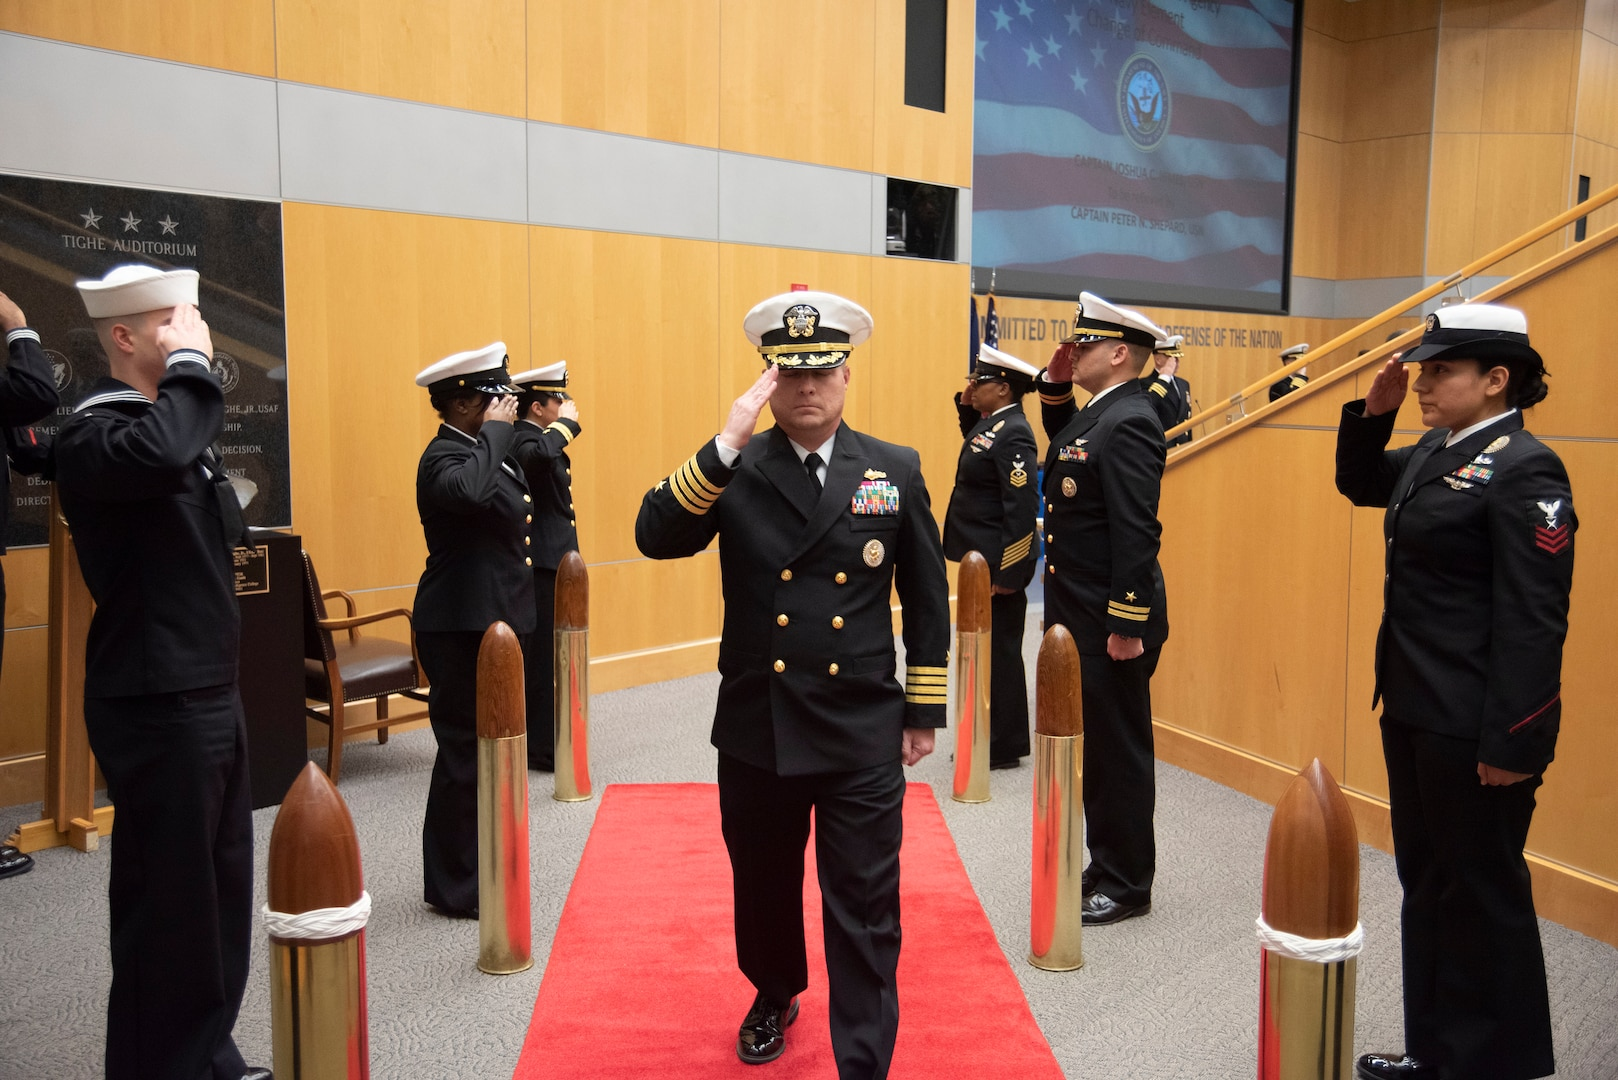 Capt. Peter N. Shepard is piped ashore after becoming the new commander of Defense Intelligence Agency Navy Element during a change of command ceremony, Jan. 30, at the DIA headquarters on Joint Base Anacostia-Bolling.